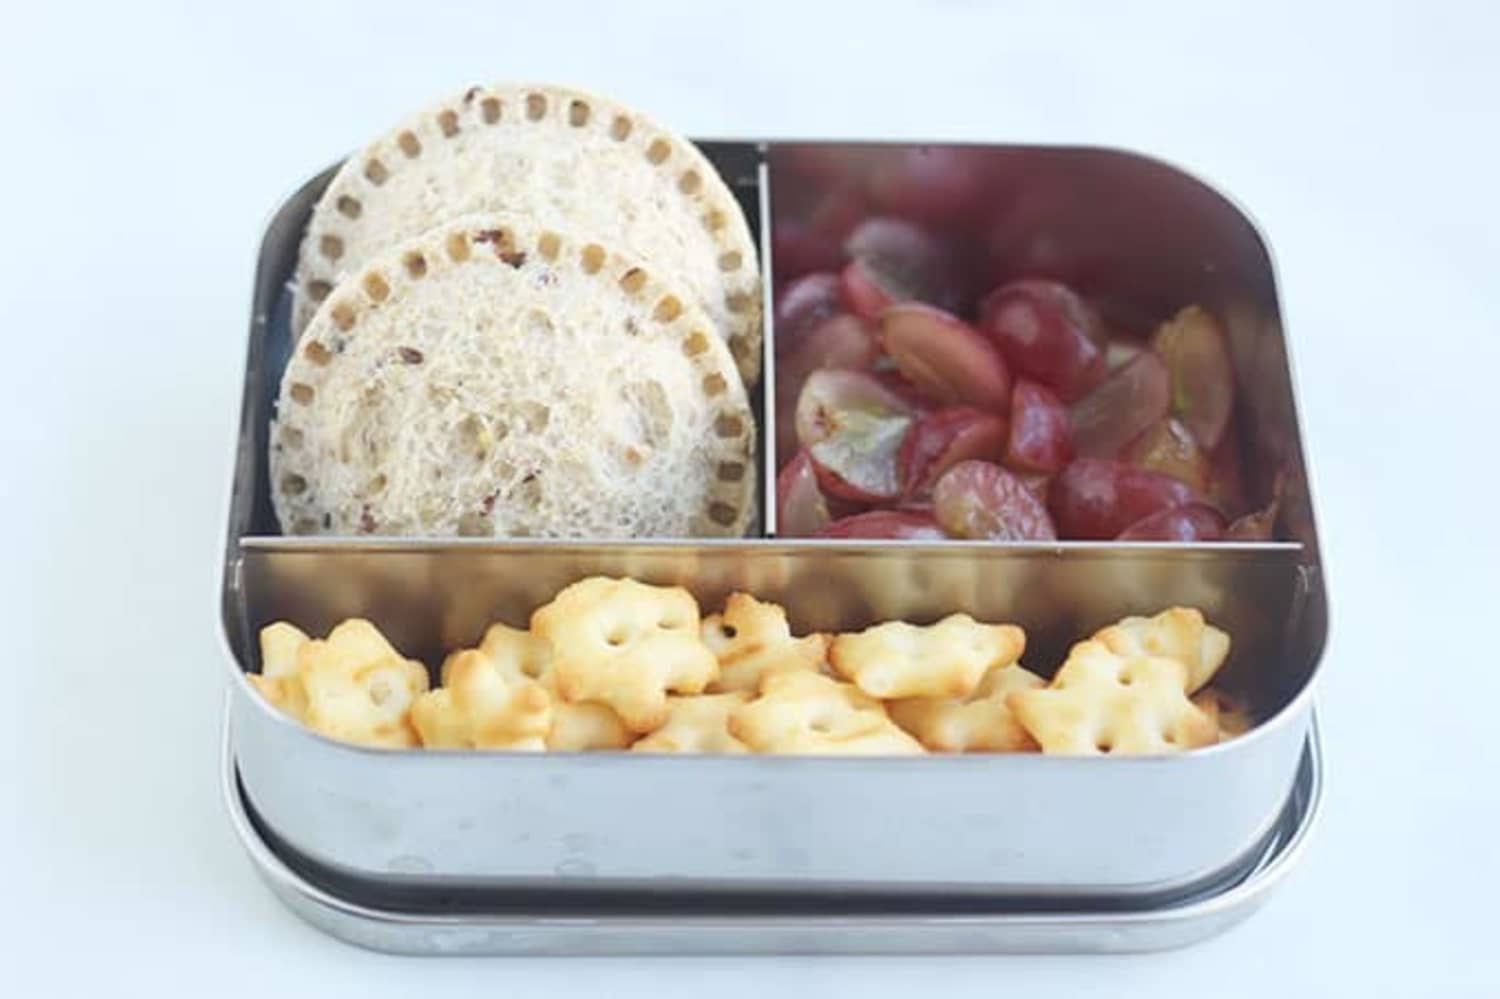 Homemade Uncrustables Are an Easy-but-Special Lunch-Box Treat